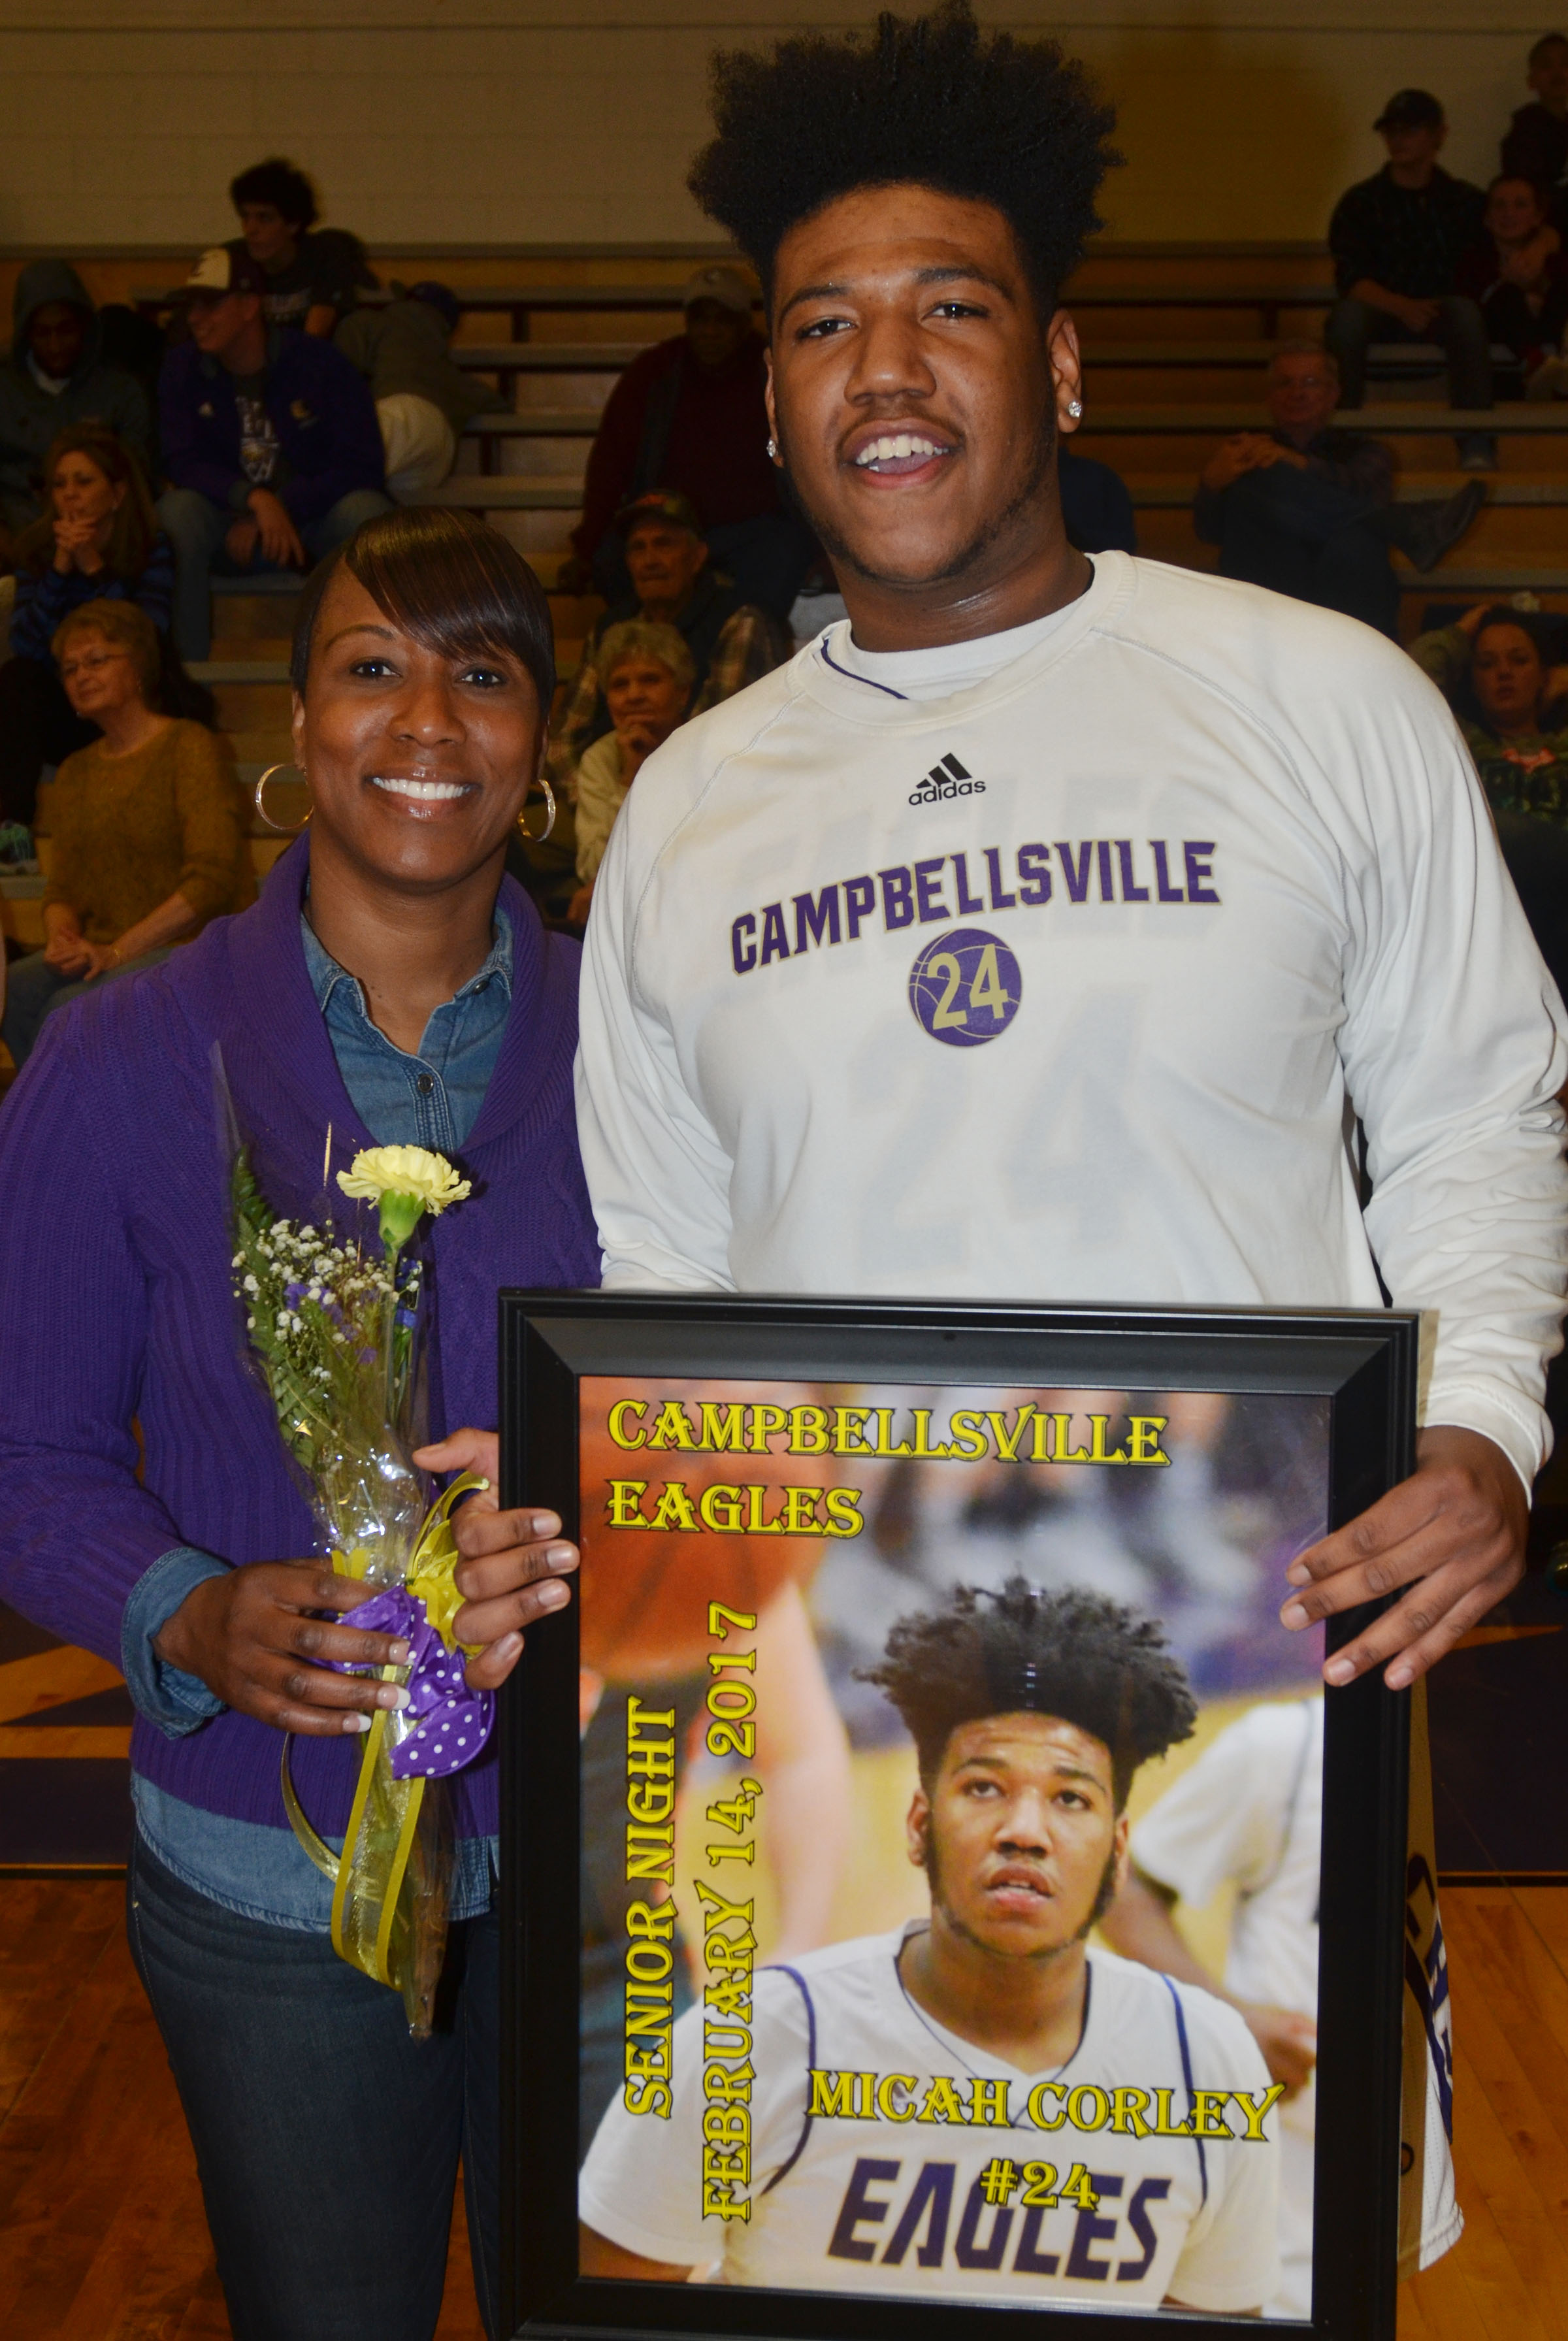 CHS senior boys' basketball player Micah Corley is honored. He is pictured with his mother, Latonya Bridgewater.